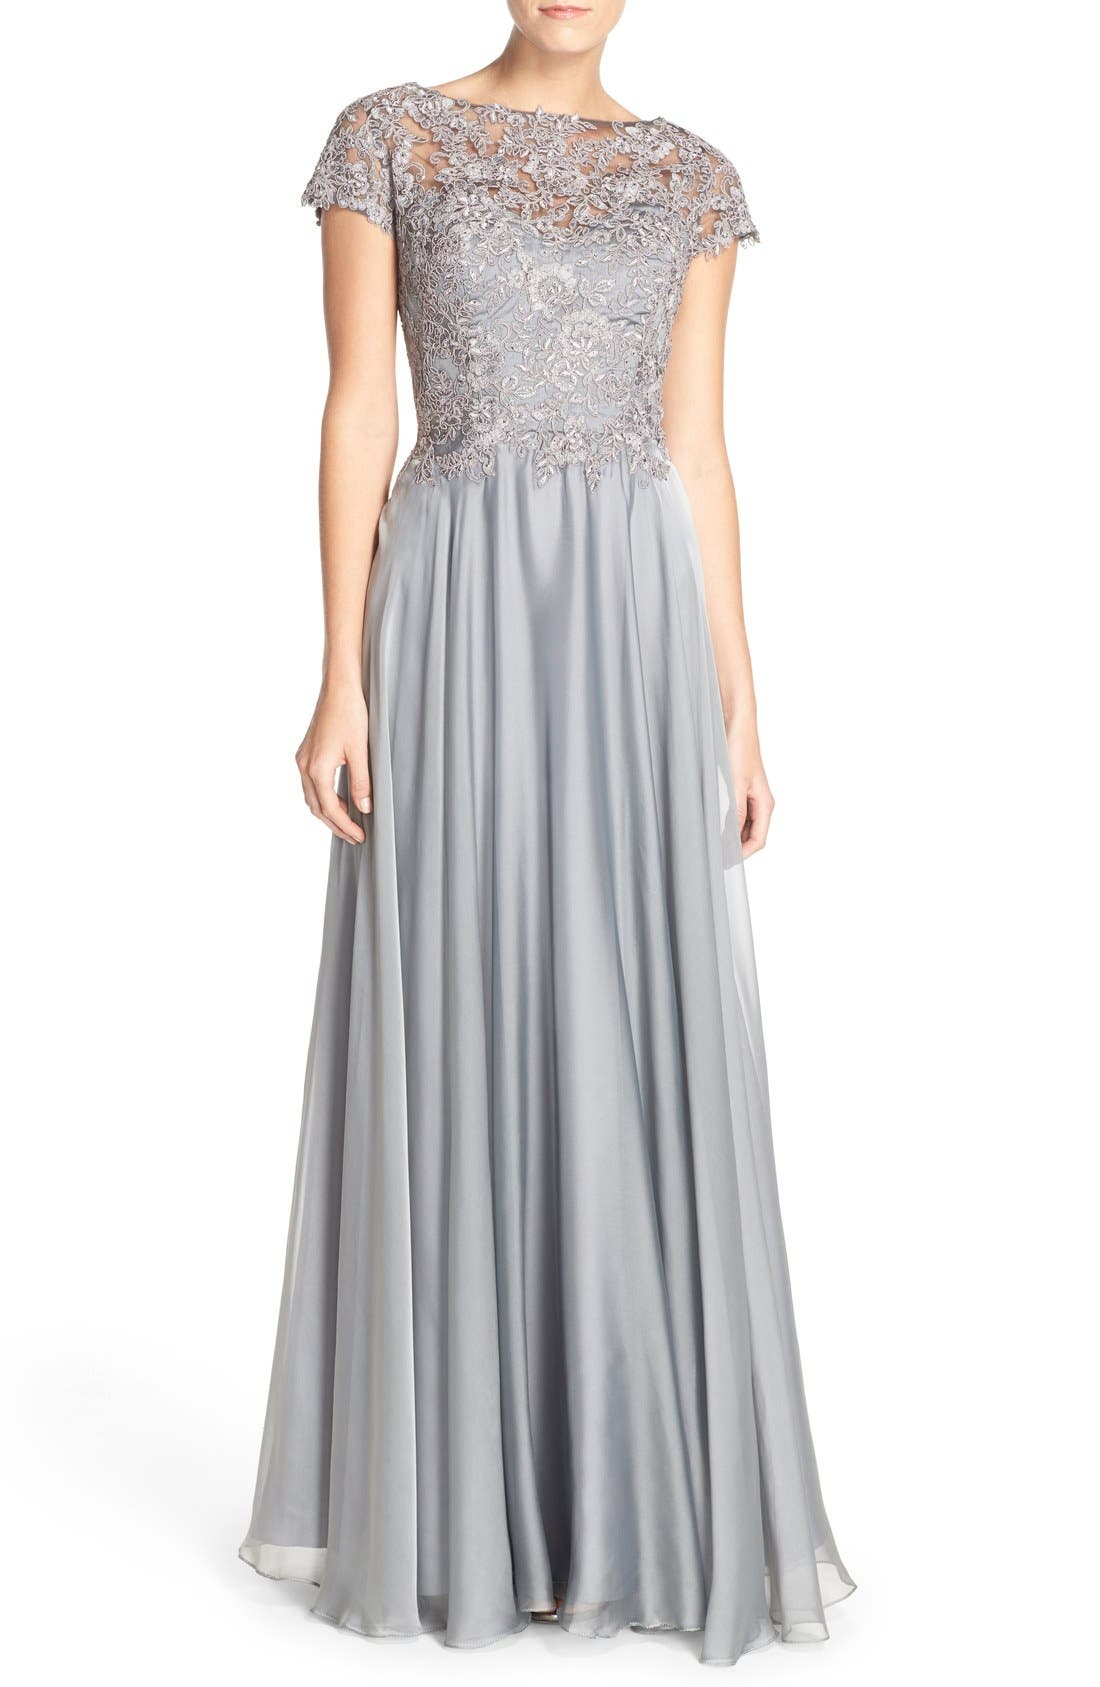 1940s Formal Dresses, Evening Gowns History Womens La Femme Embellished Lace  Satin Ballgown Size 20 similar to 20W-22W - Grey $450.00 AT vintagedancer.com